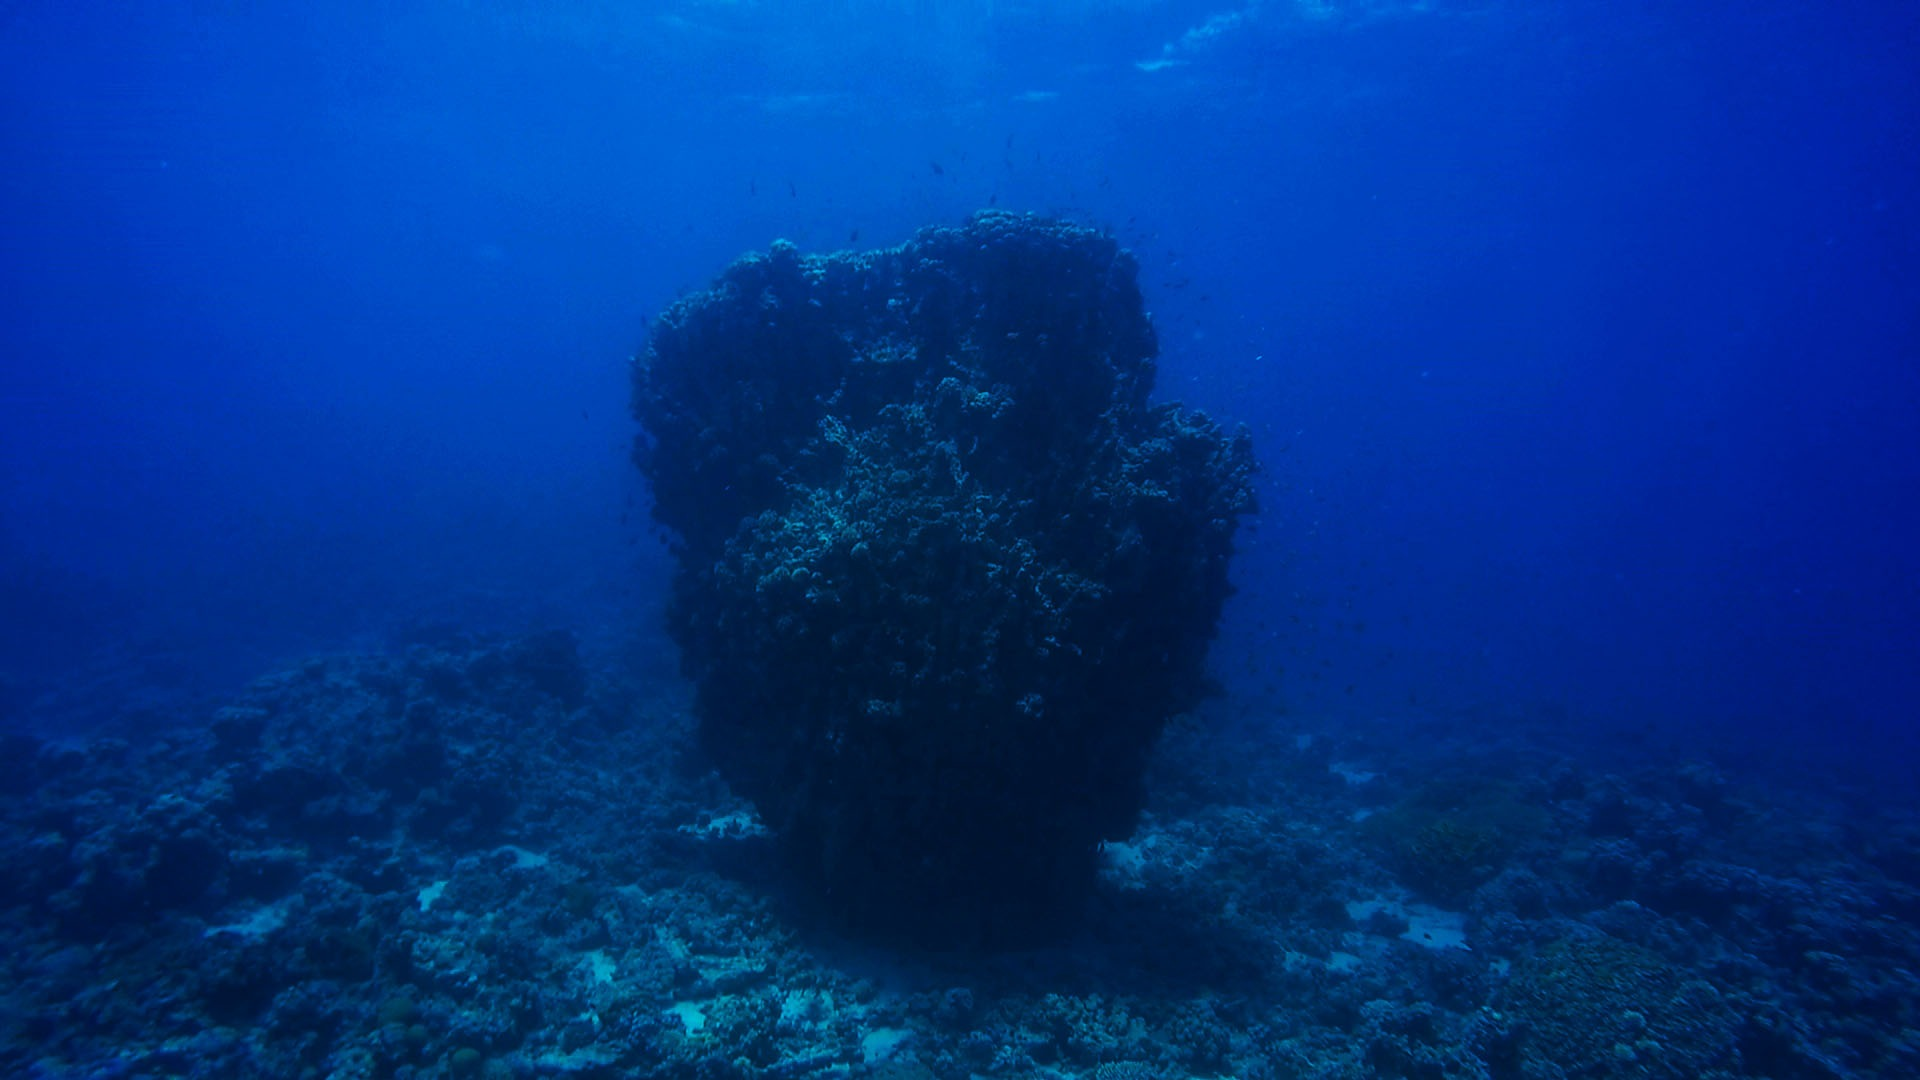 The great reef rock by Hassan Alkadi